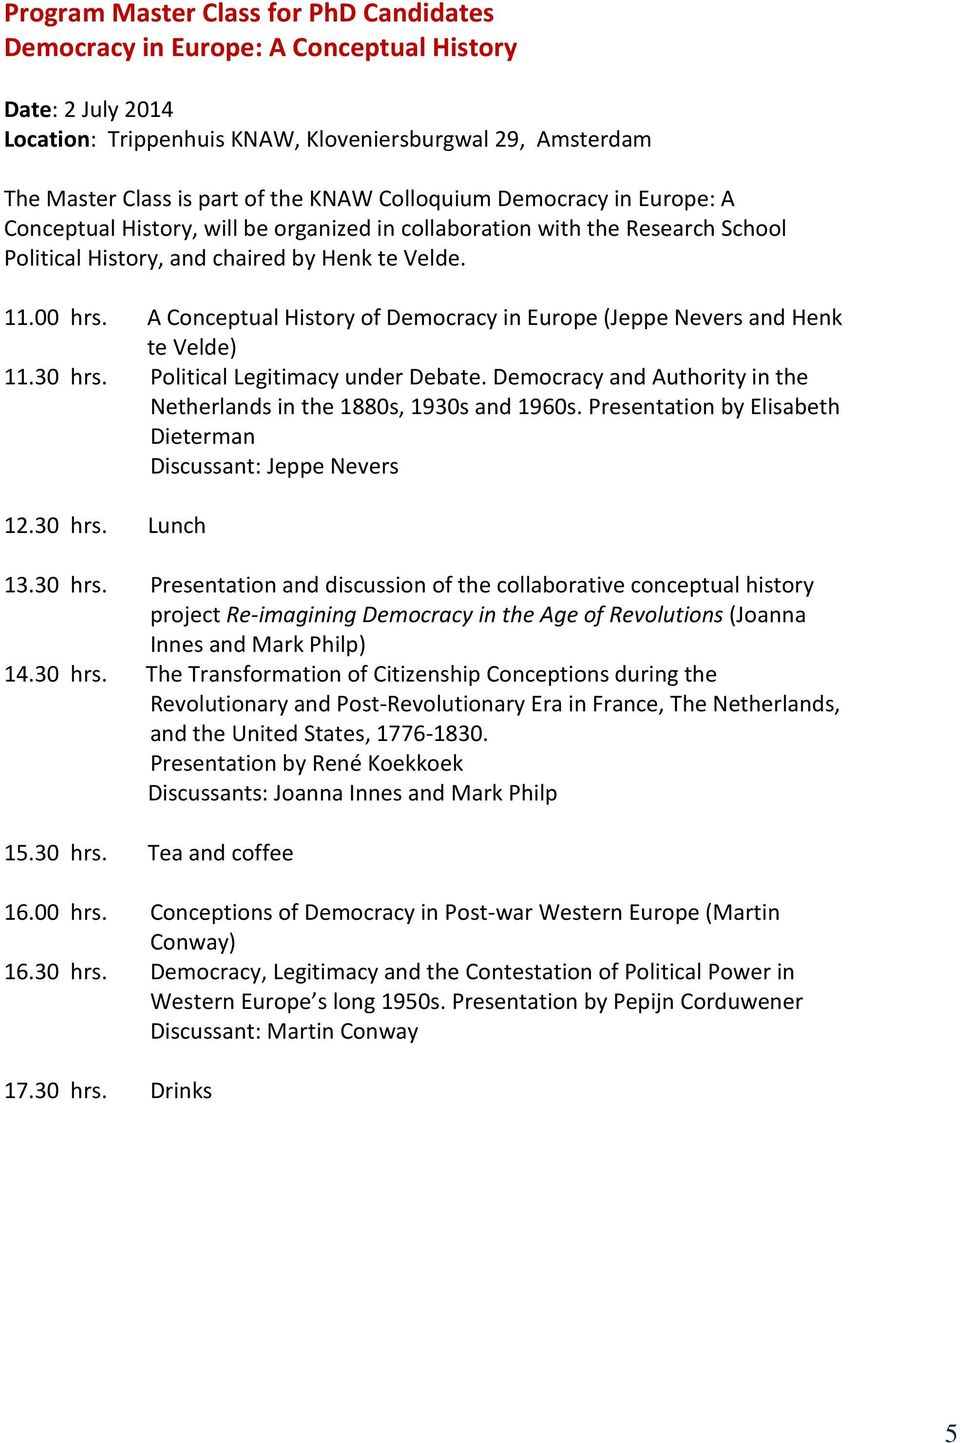 A Conceptual History of Democracy in Europe (Jeppe Nevers and Henk te Velde) 11.30 hrs. Political Legitimacy under Debate. Democracy and Authority in the Netherlands in the 1880s, 1930s and 1960s.